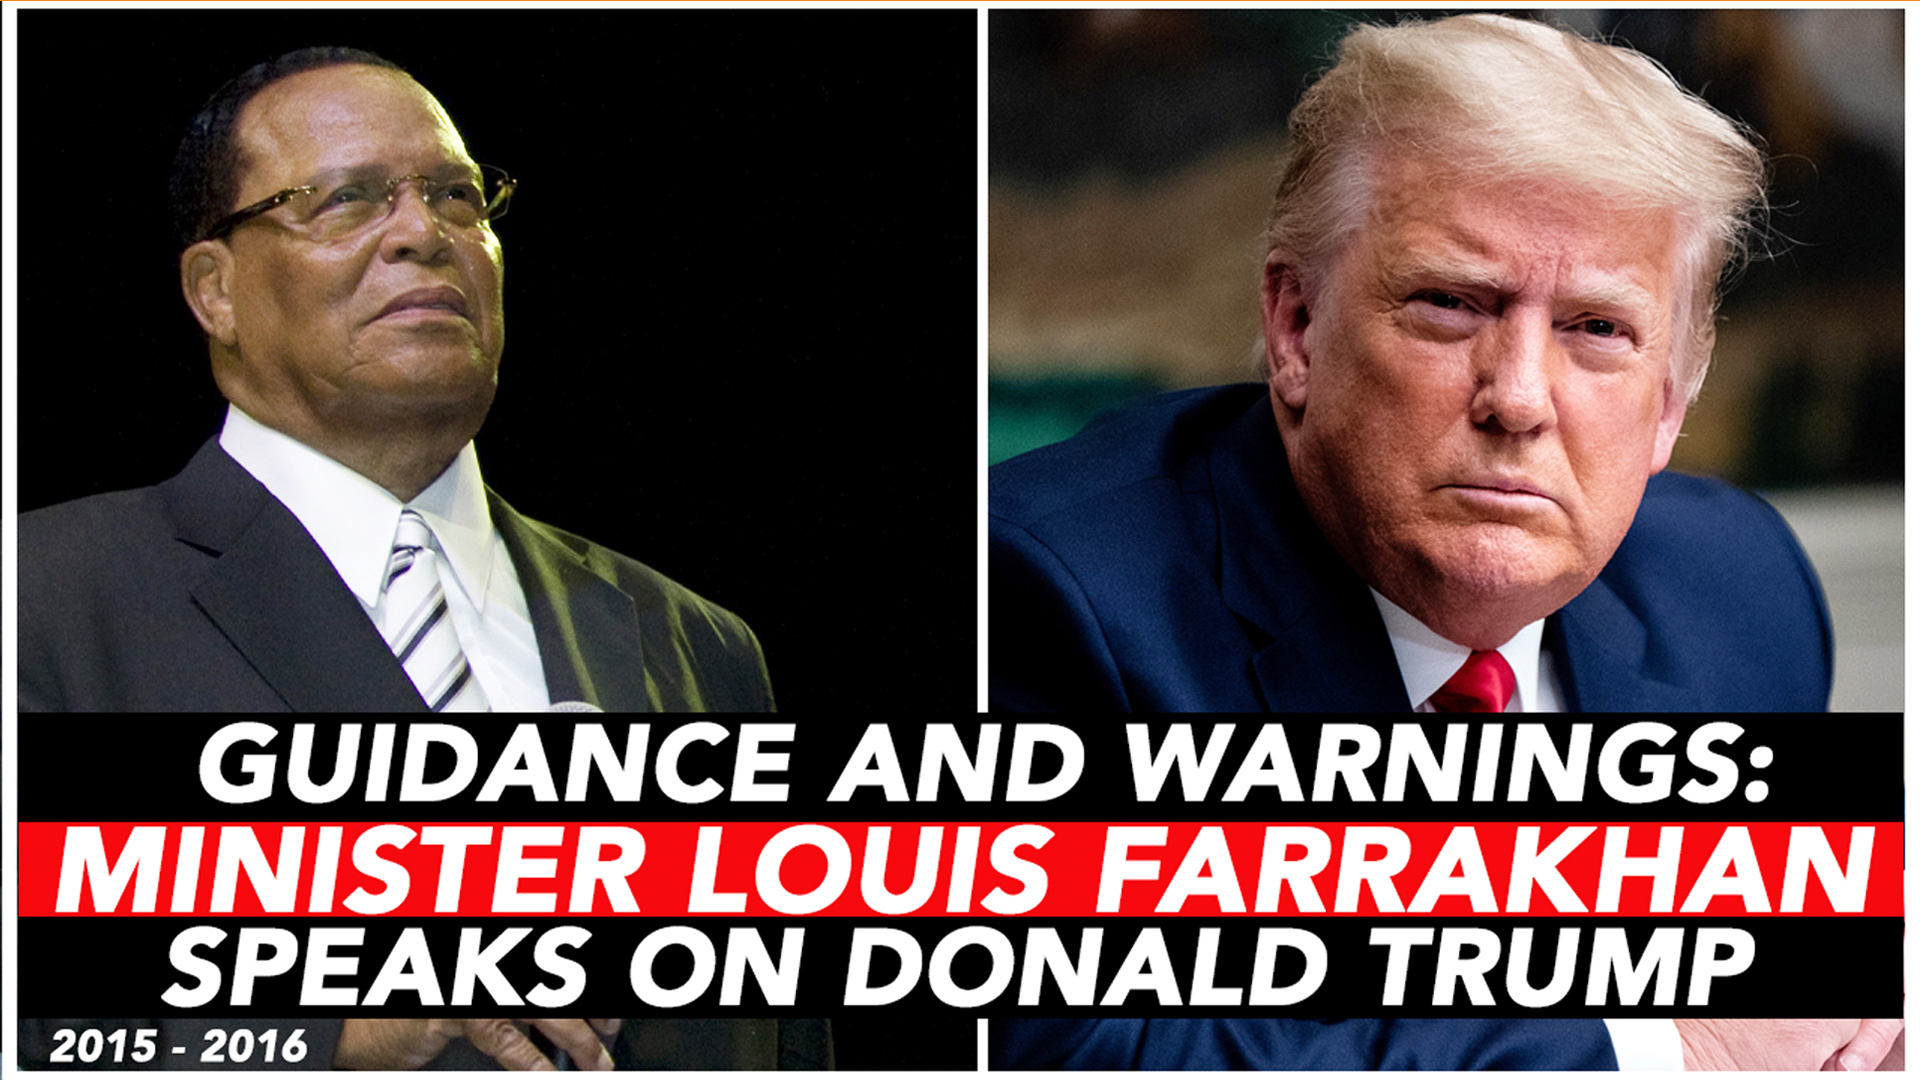 What Did Minister Farrakhan Say About Former President Trump?